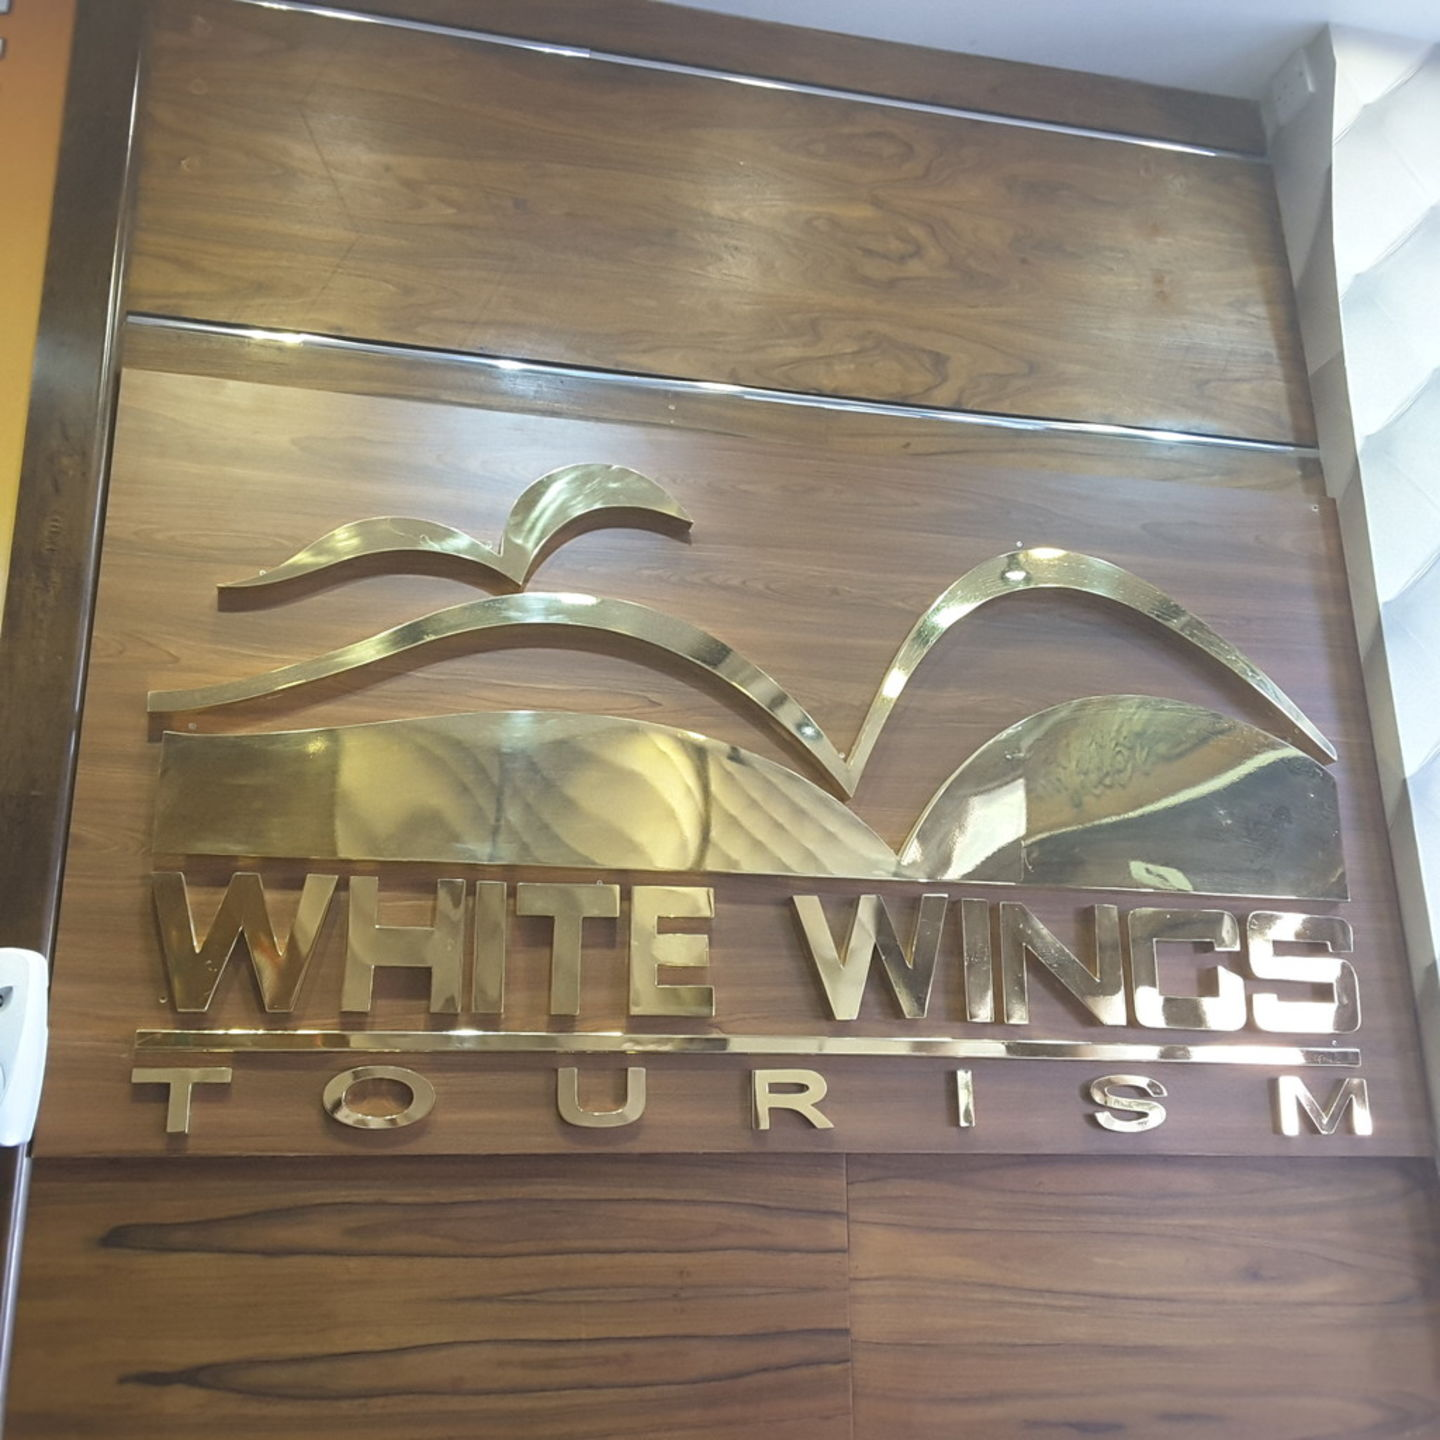 HiDubai-business-white-wings-tourism-hotels-tourism-travel-ticketing-agencies-riggat-al-buteen-dubai-2